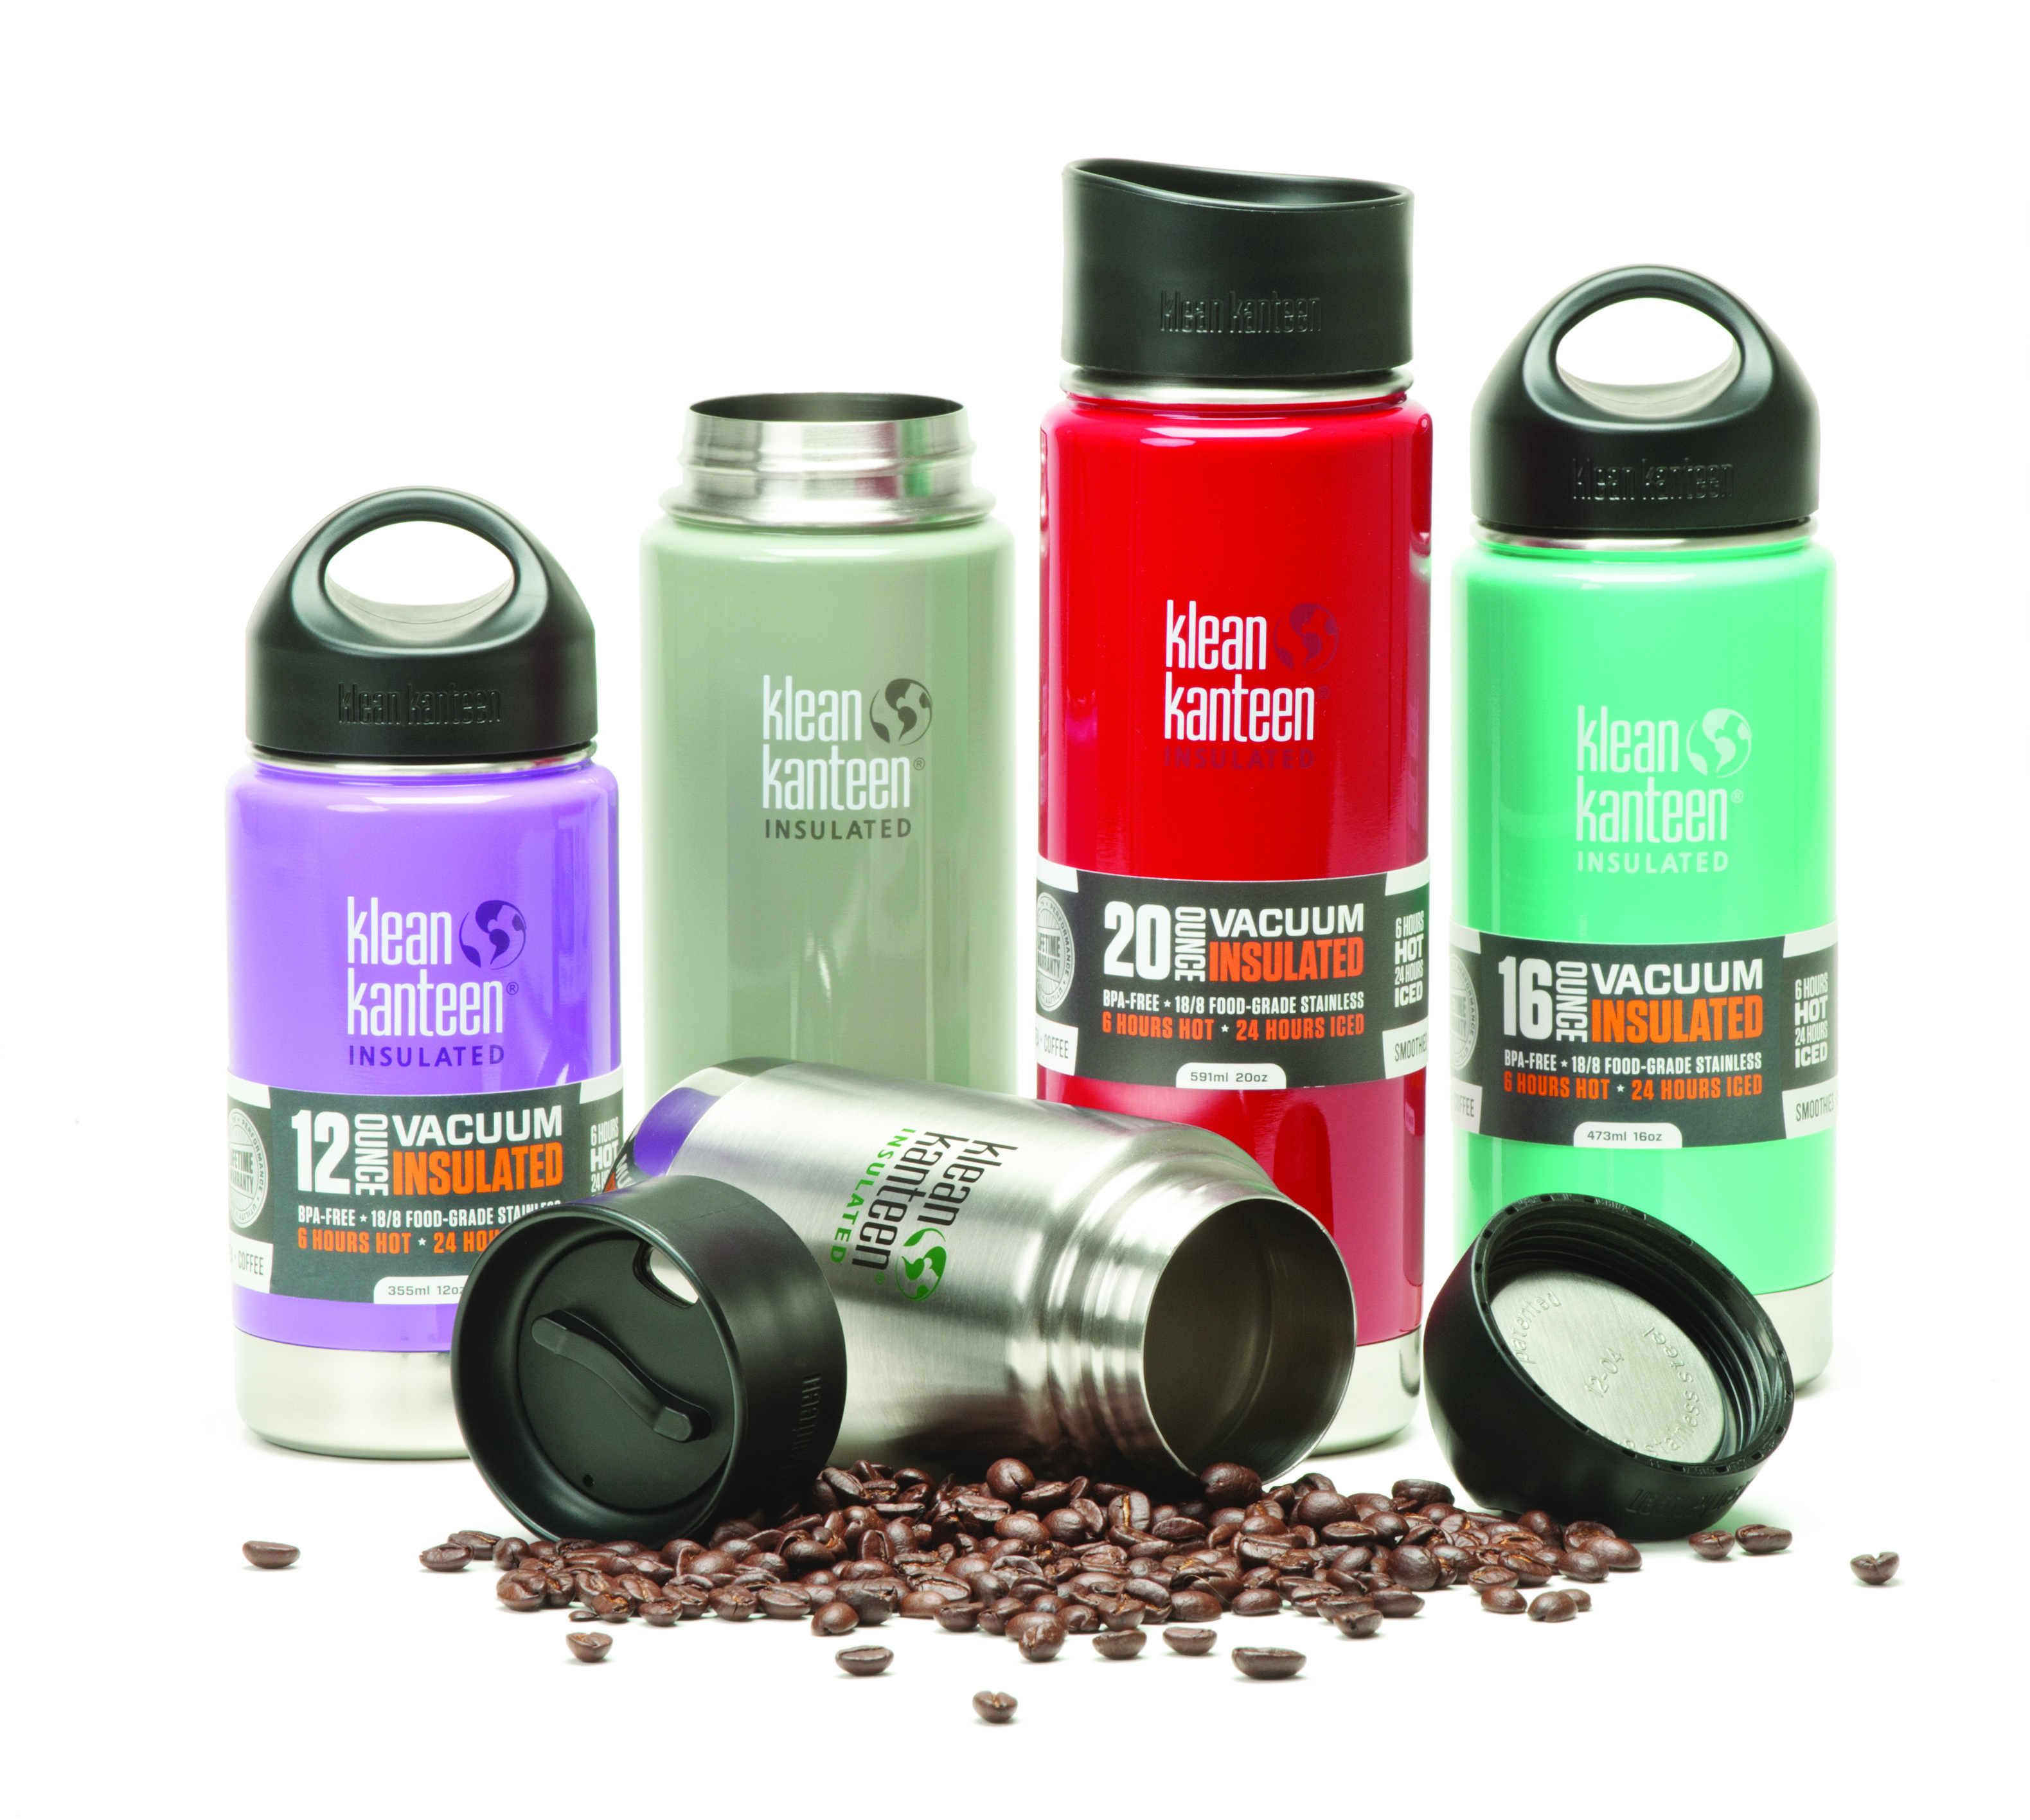 Klean Kanteen available at Certified Calm